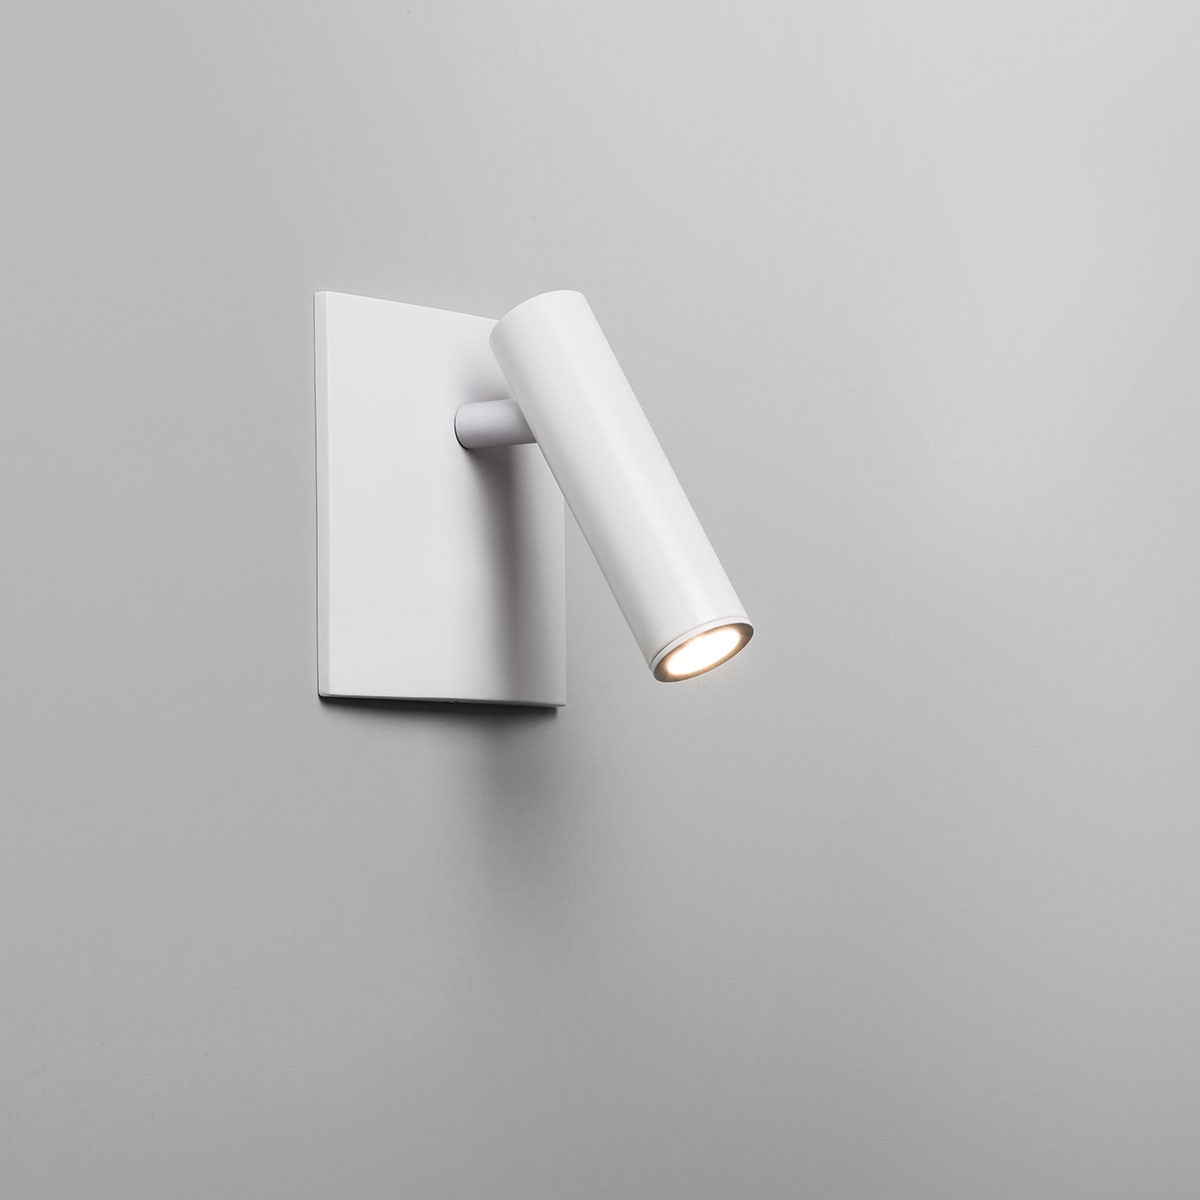 All Square Wall Lights : Astro Enna Square Unswitched LED White Wall Light at UK Electrical Supplies.